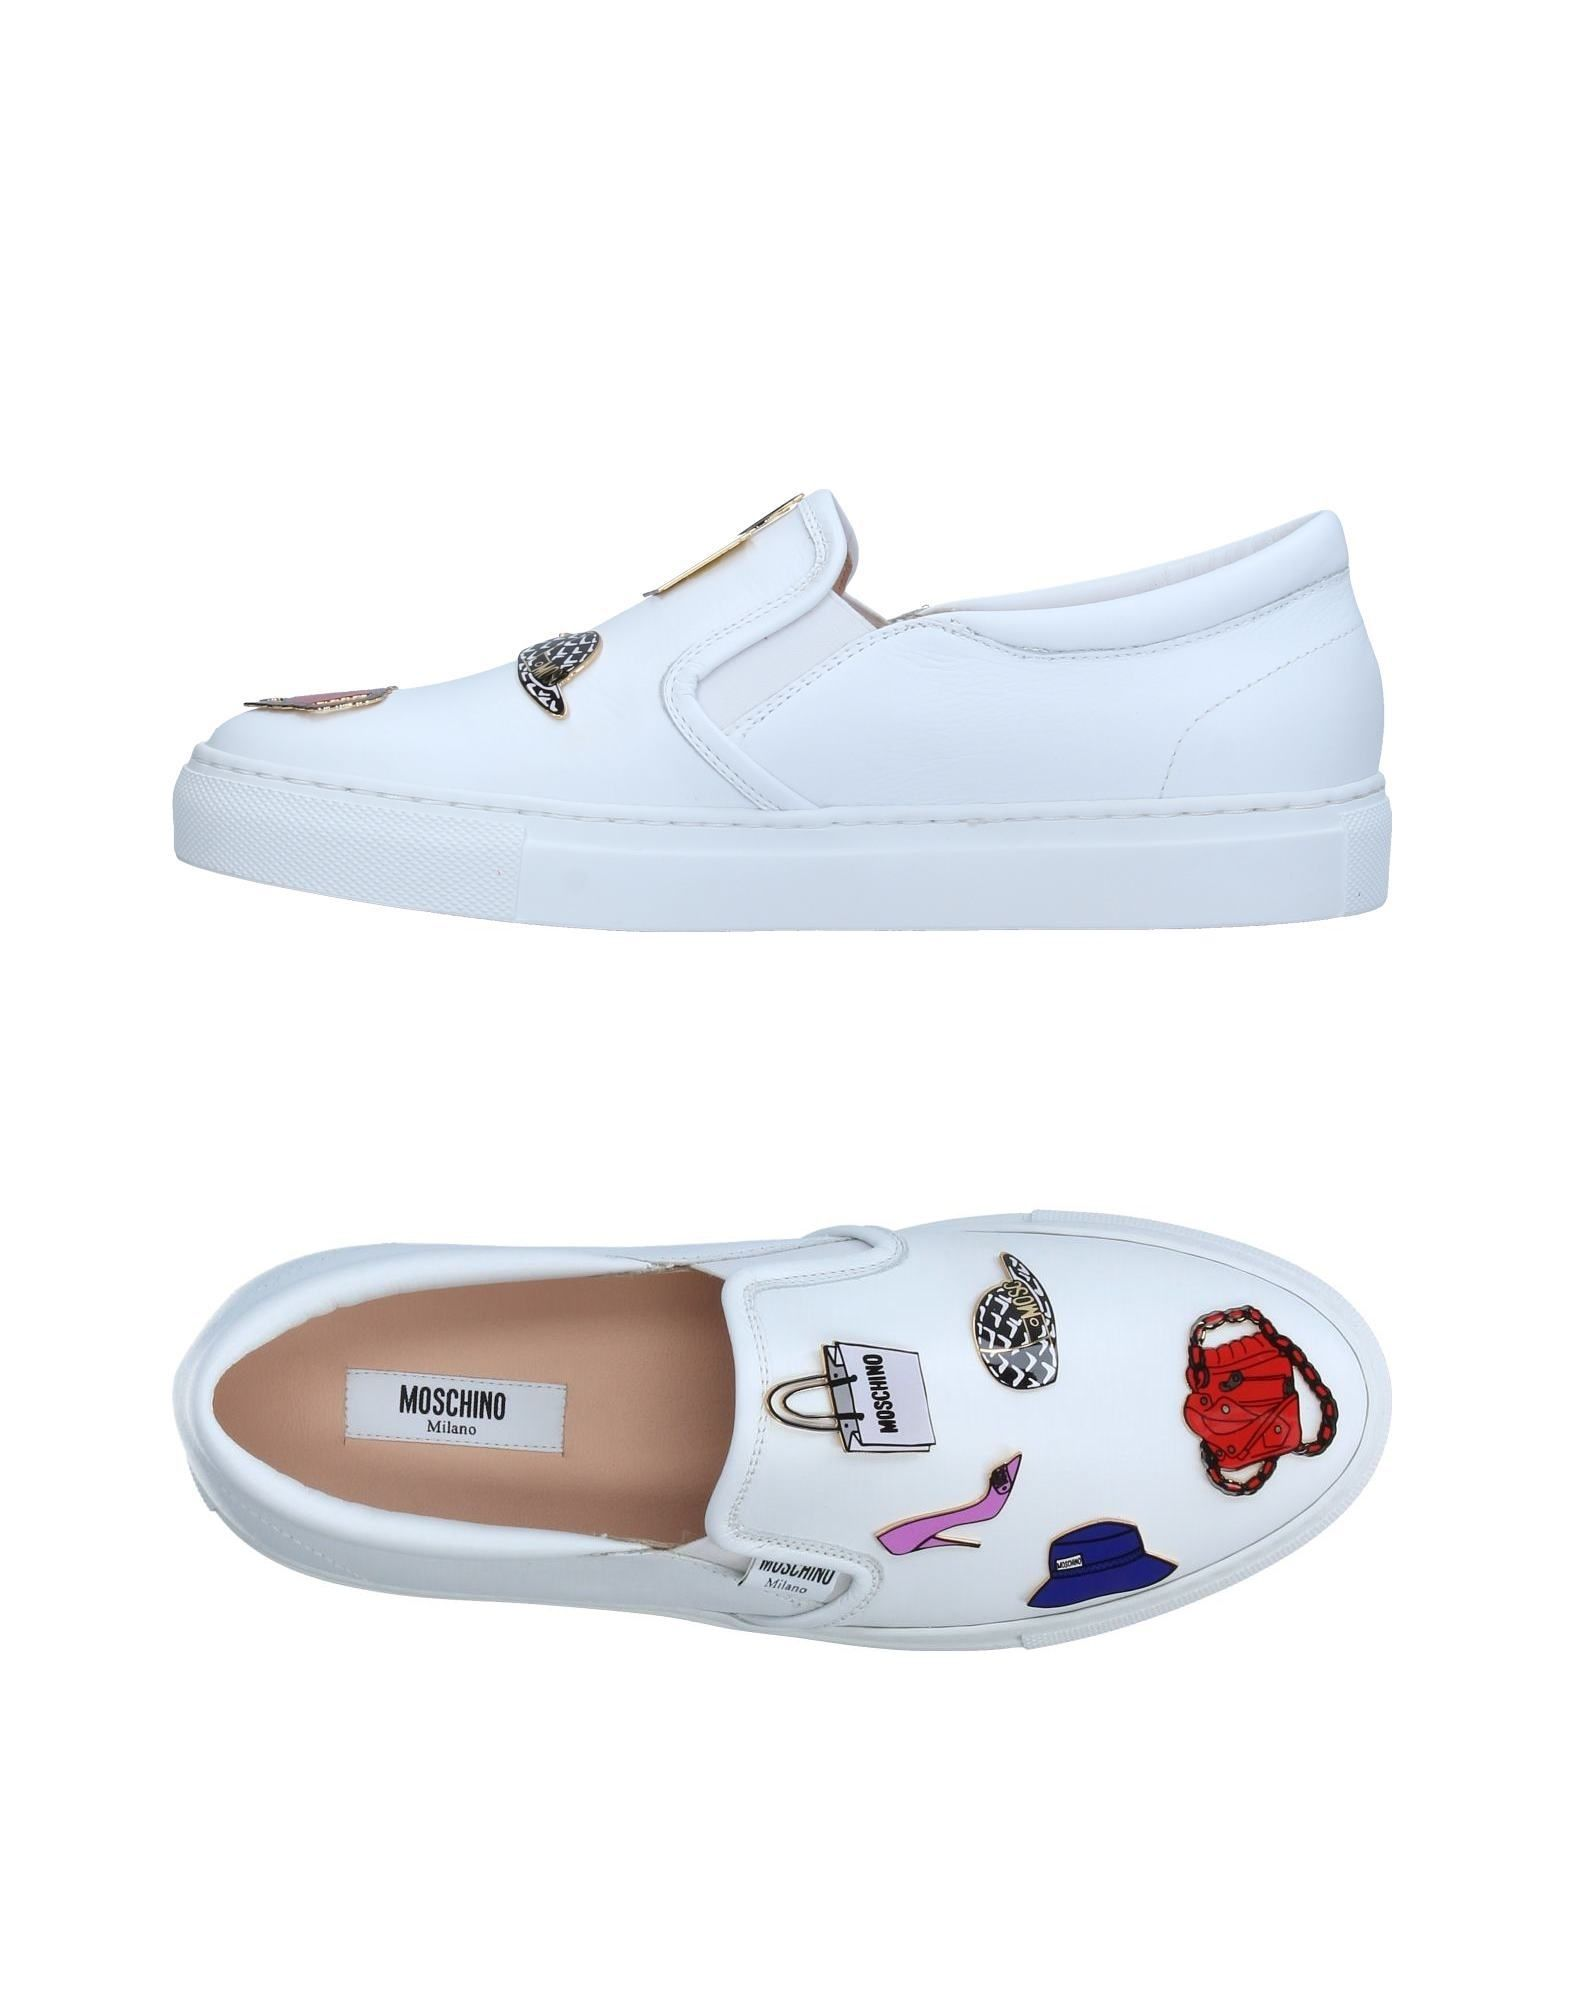 Sneakers Moschino Femme - Sneakers Moschino sur